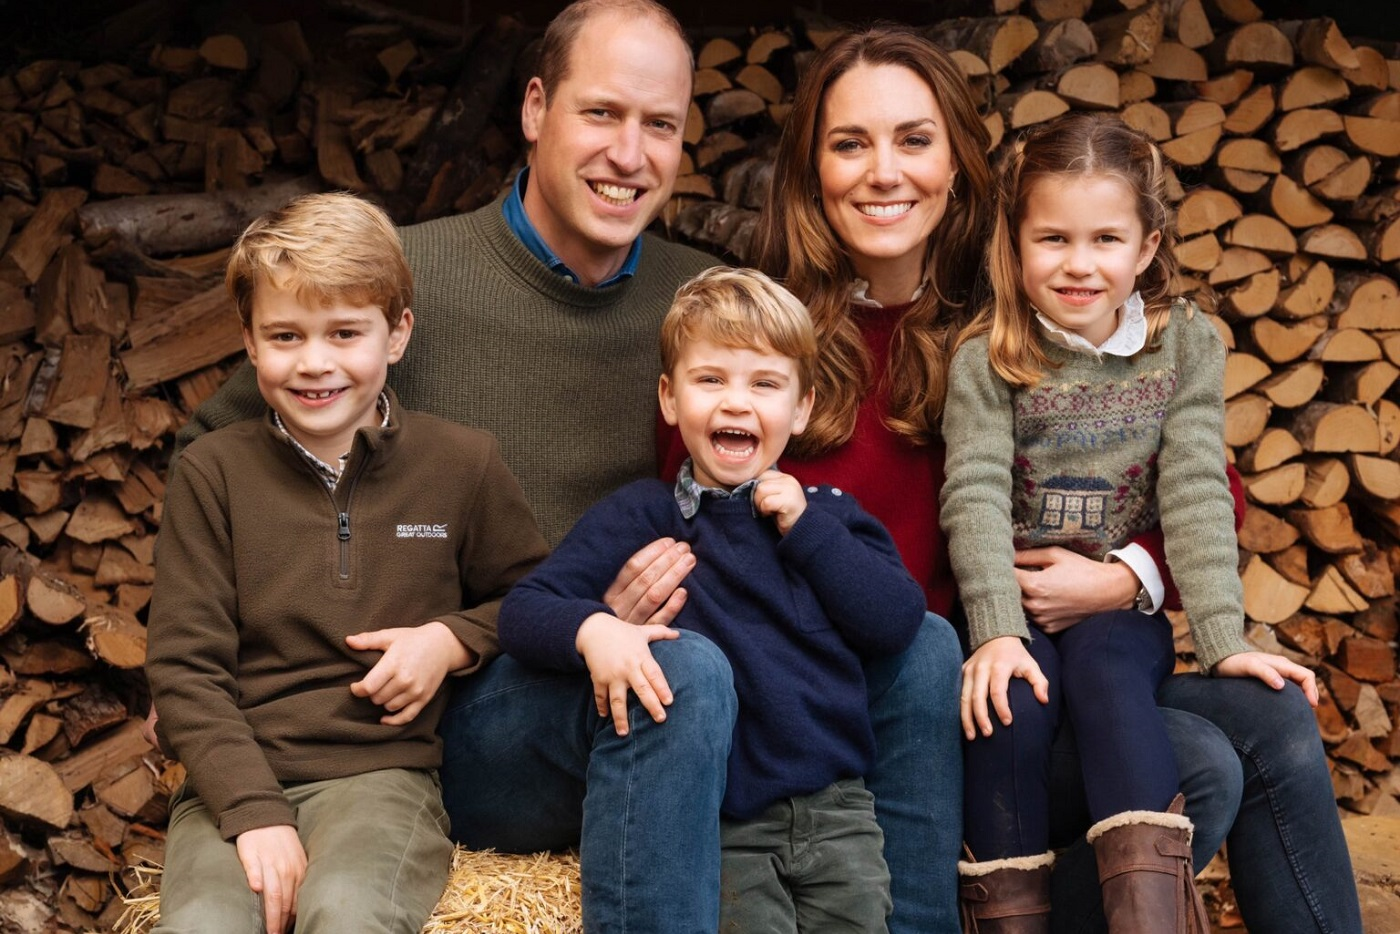 The Duke and Duchess of Cambridge took Prince George, Princess Charlotte and Prince Louis to the Sandringham Park area